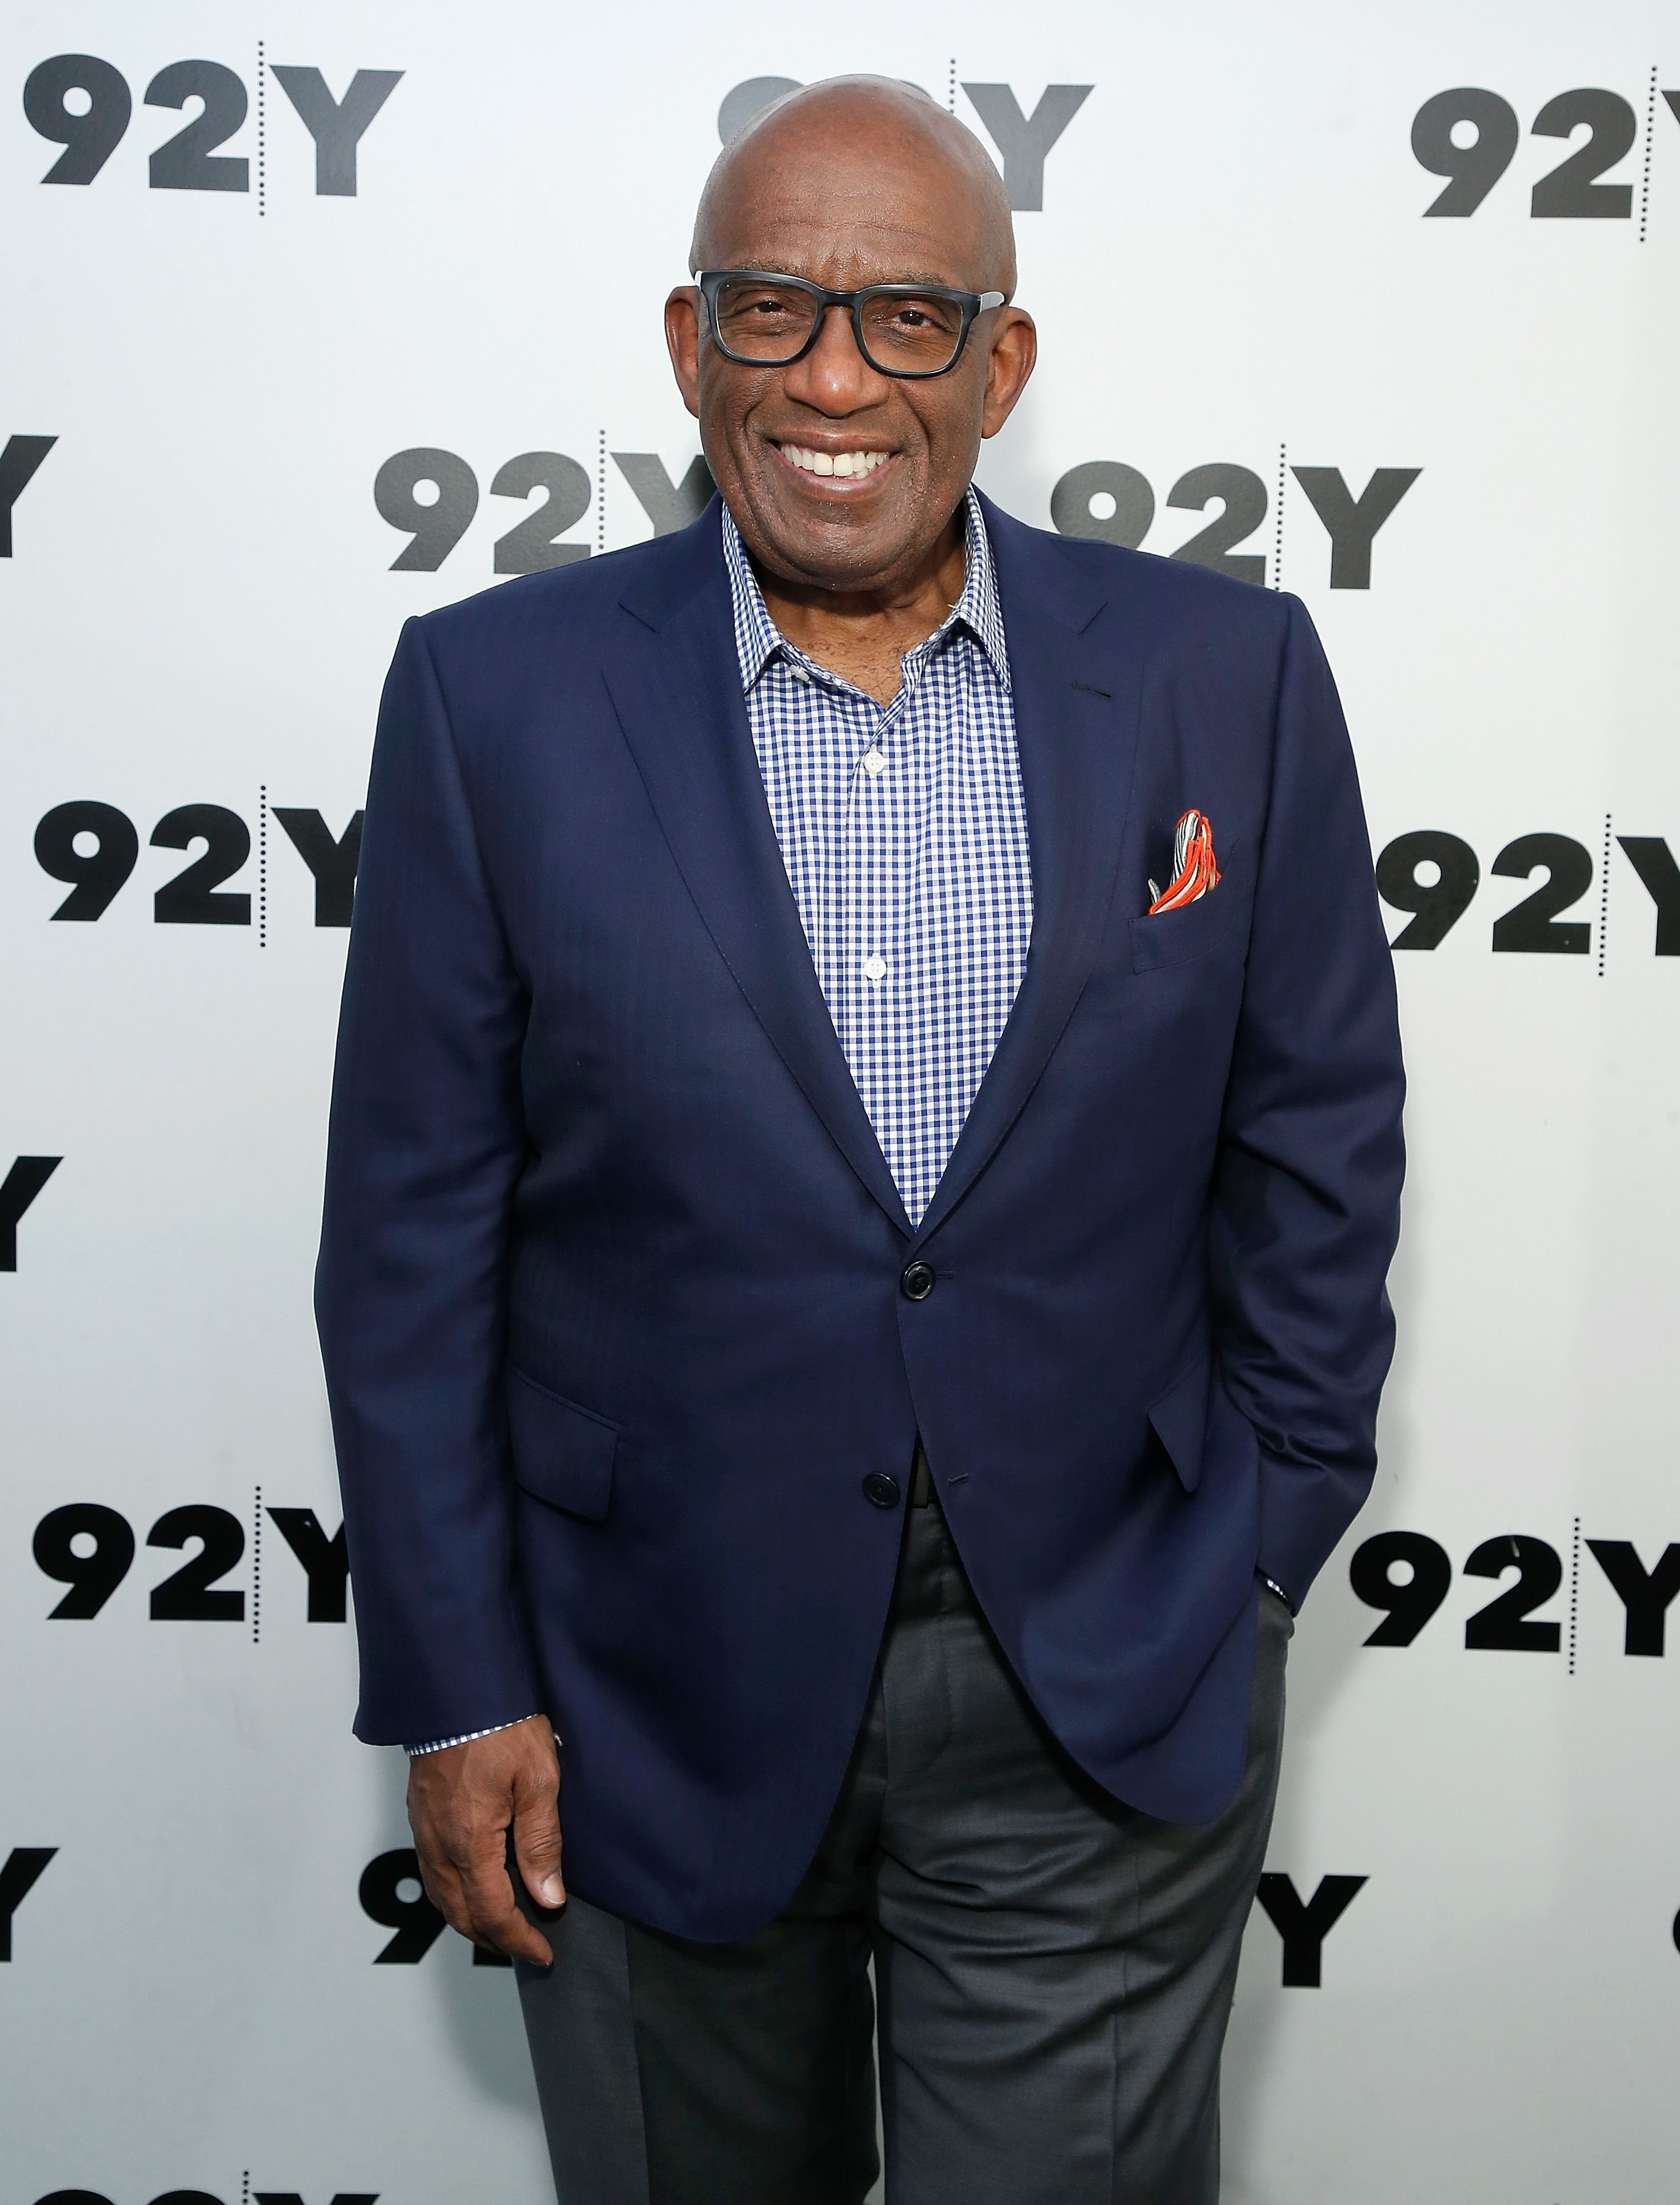 Al Roker at the Natalie Morales in conversation with Al Roker event at 92nd Street Y on April 16, 2018 | Photo: Getty Images